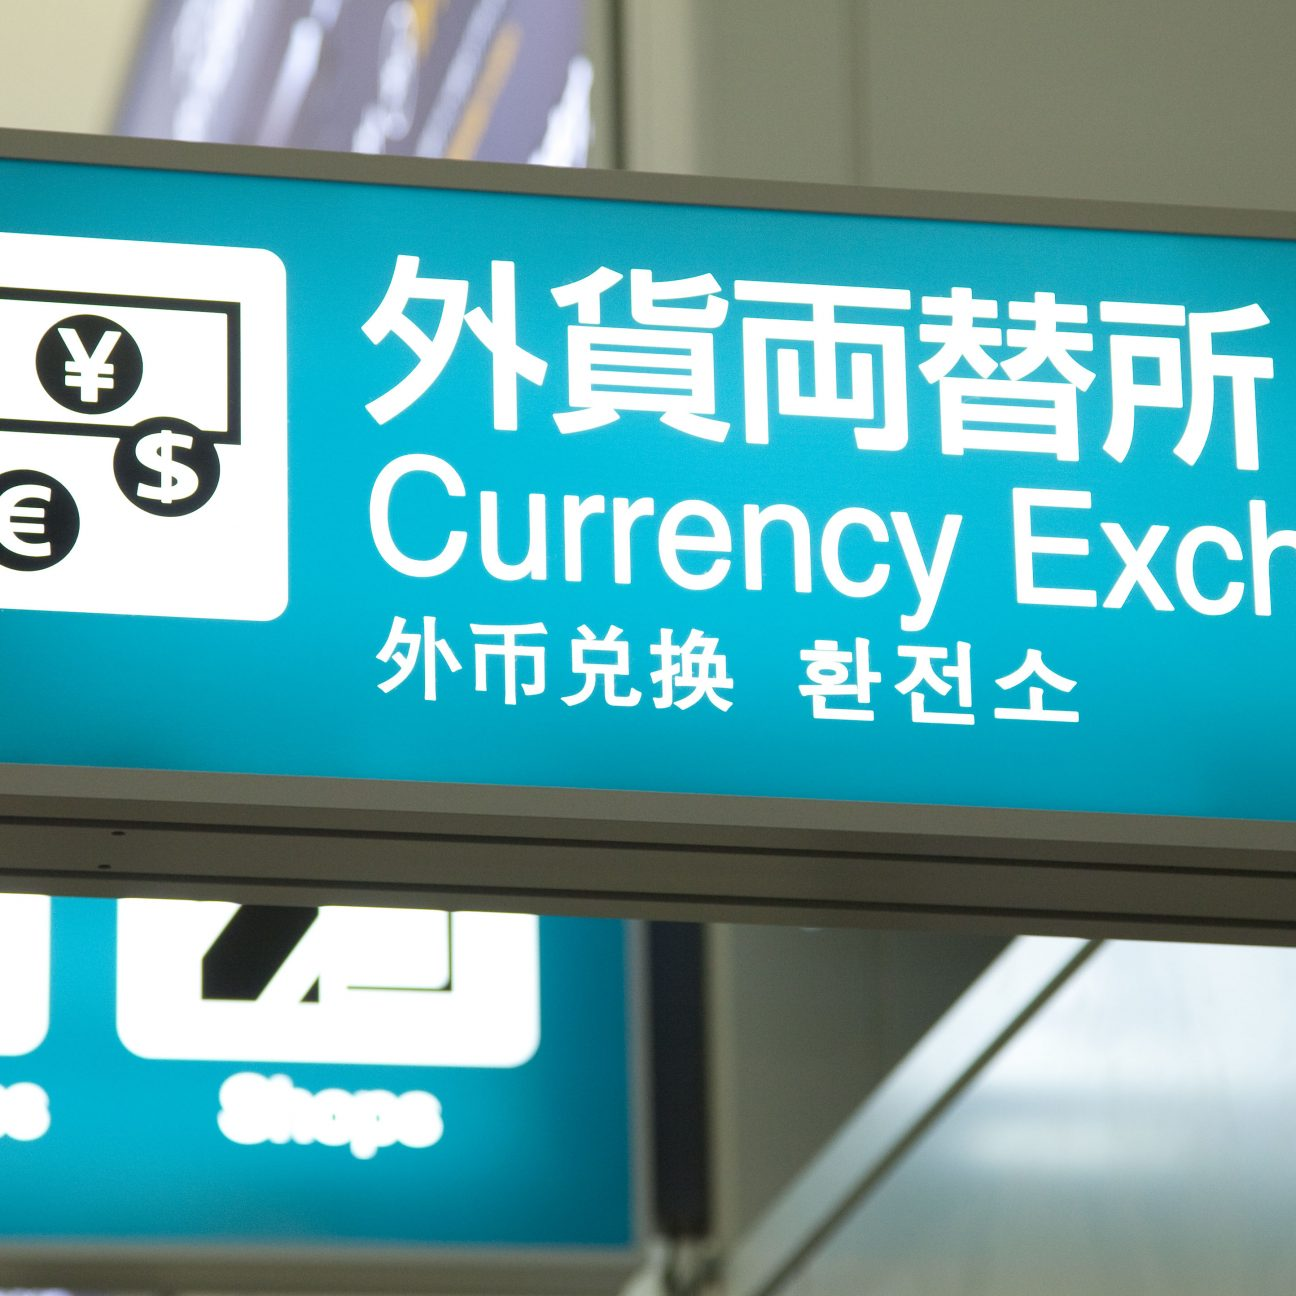 Airport Currency Exchange